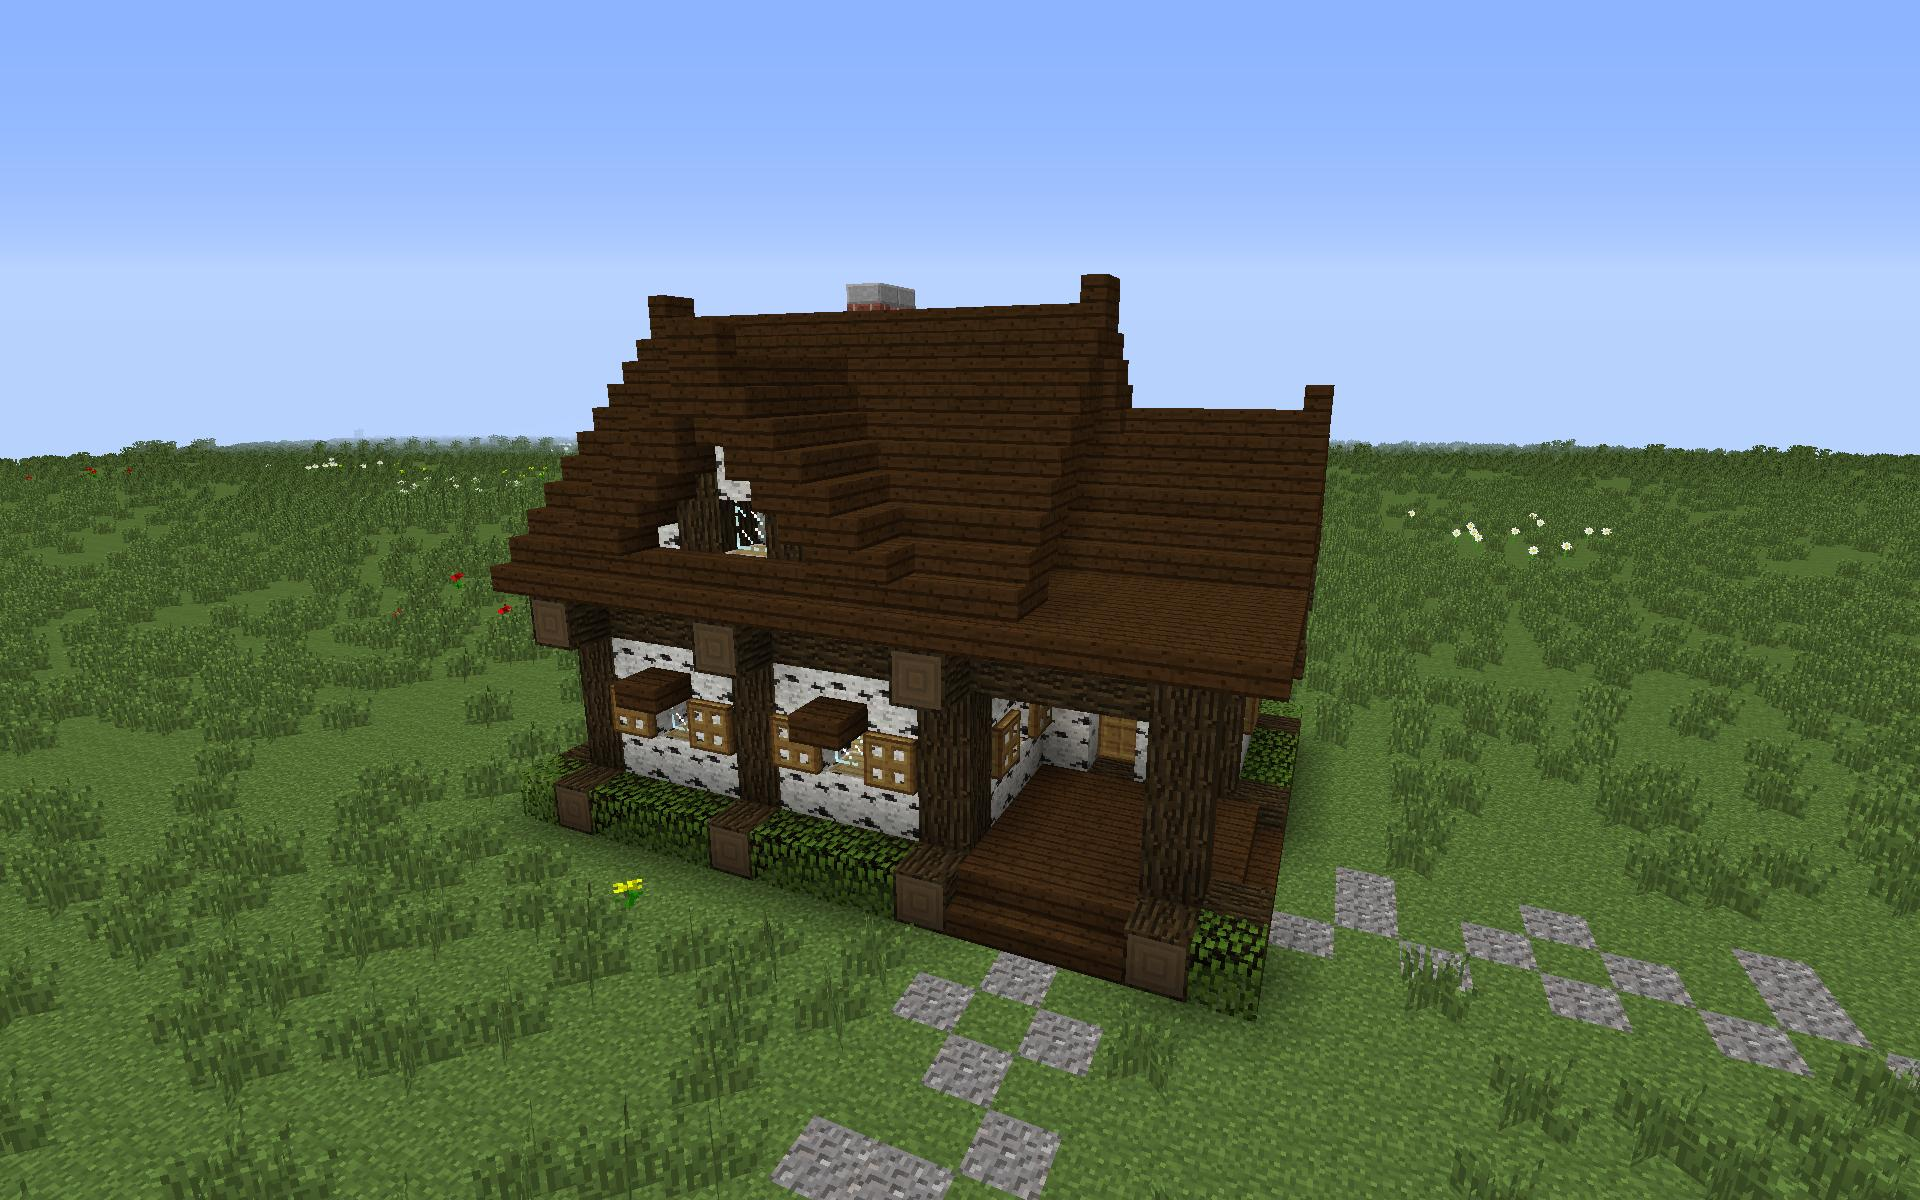 Cool House Minecraft Building for Android - APK Download